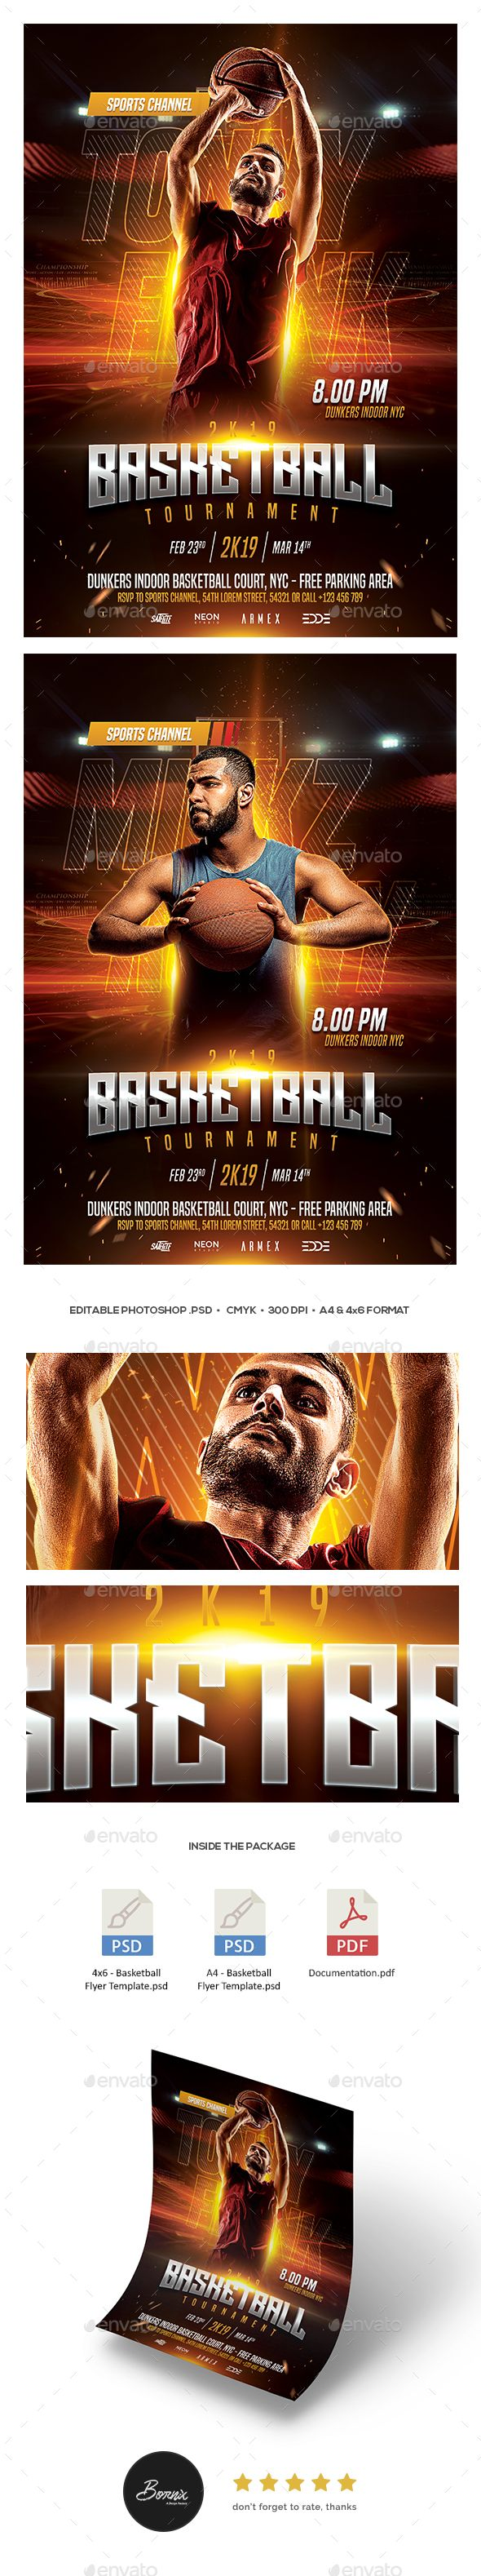 Basketball Flyer Template ¨C A premium Photoshop flyer template design perfect to promote your basketball match, basketball tournament, college basketball, basketball camp, streetball, or any basketball sport events. Available in 2 formats, A4 & 4x6 .psd flyer,